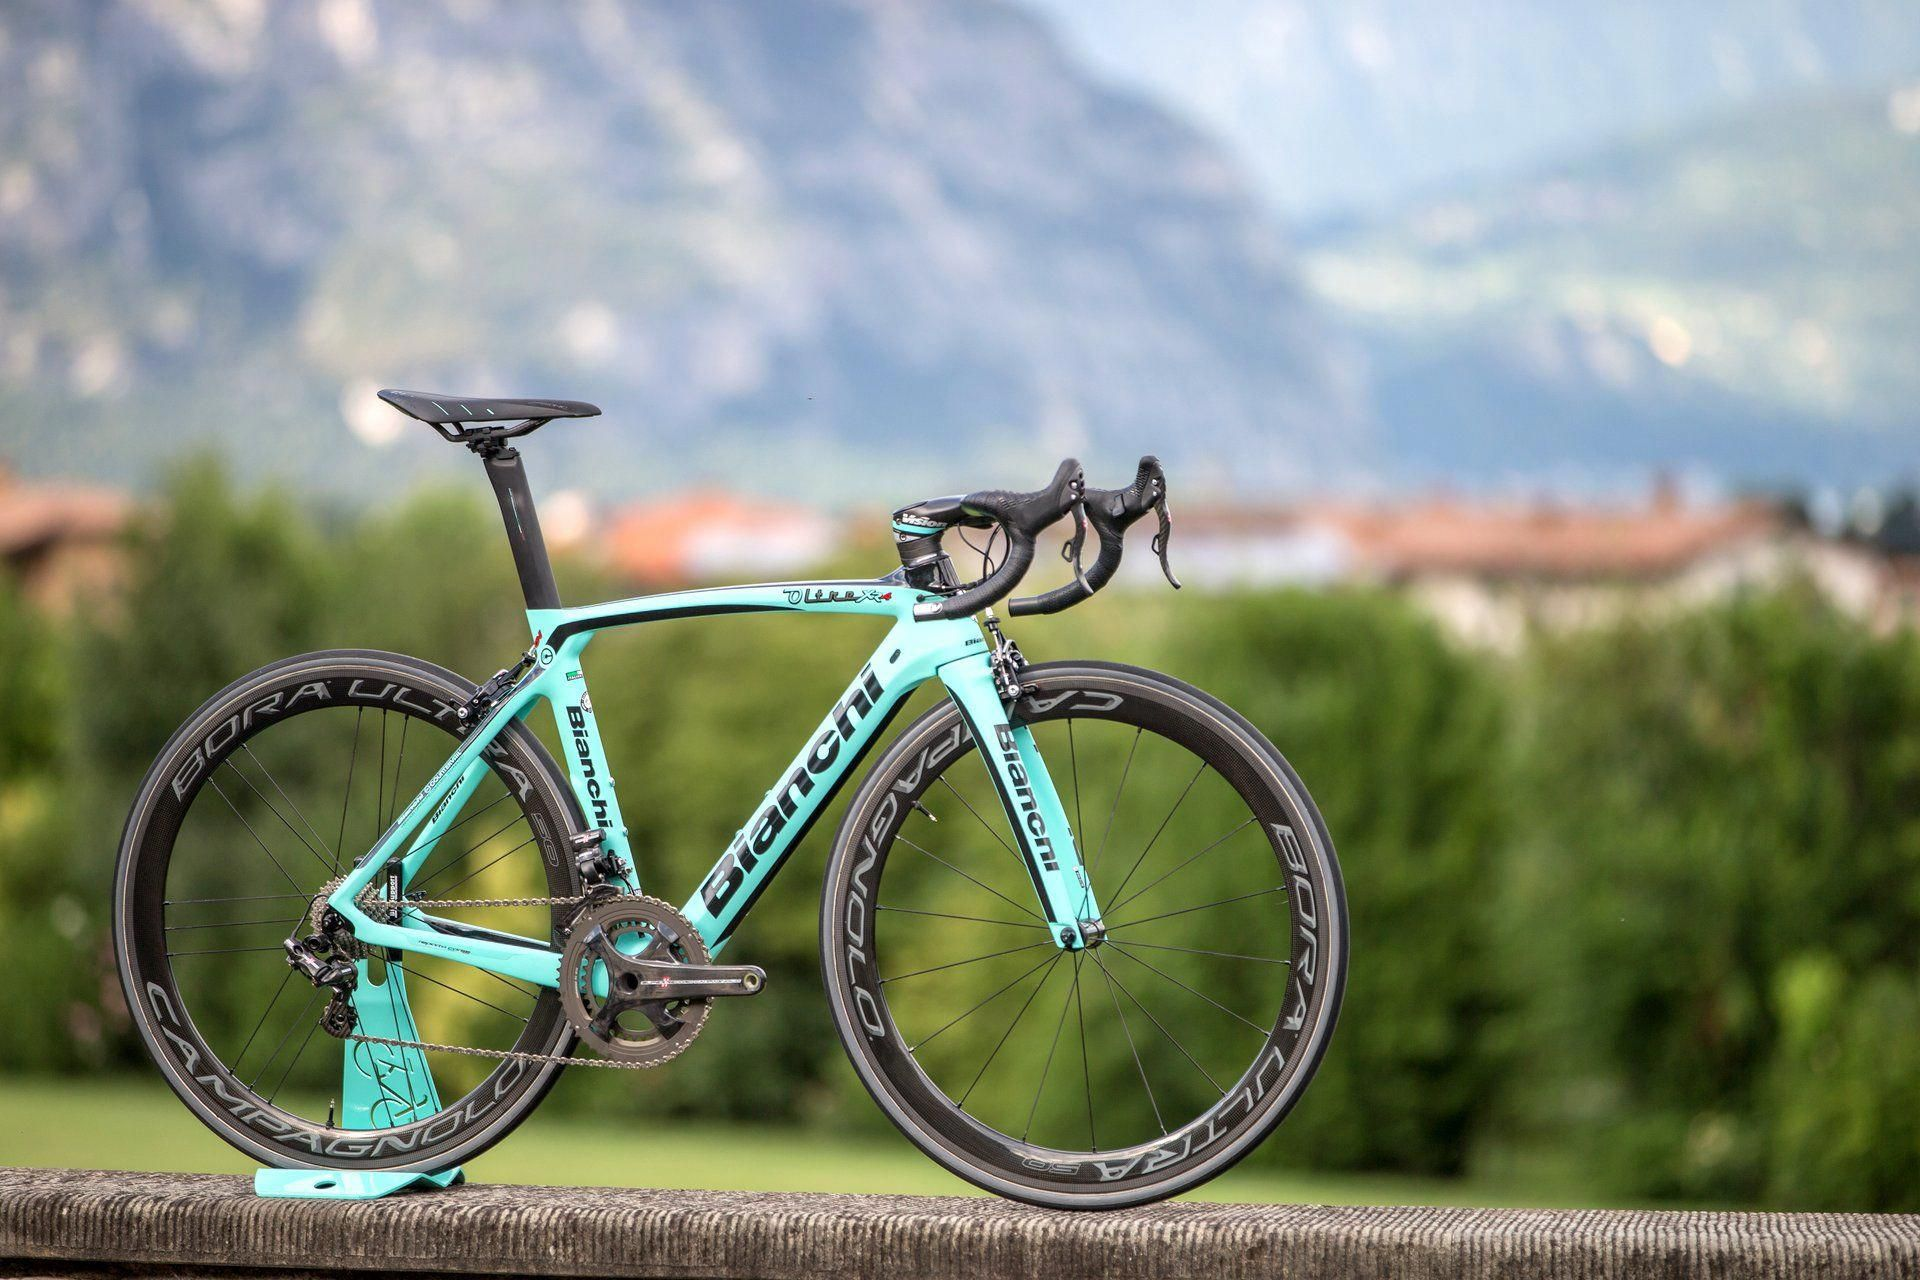 Bianchi Oltre Xr4 First Ride Review Road Cycling Uk